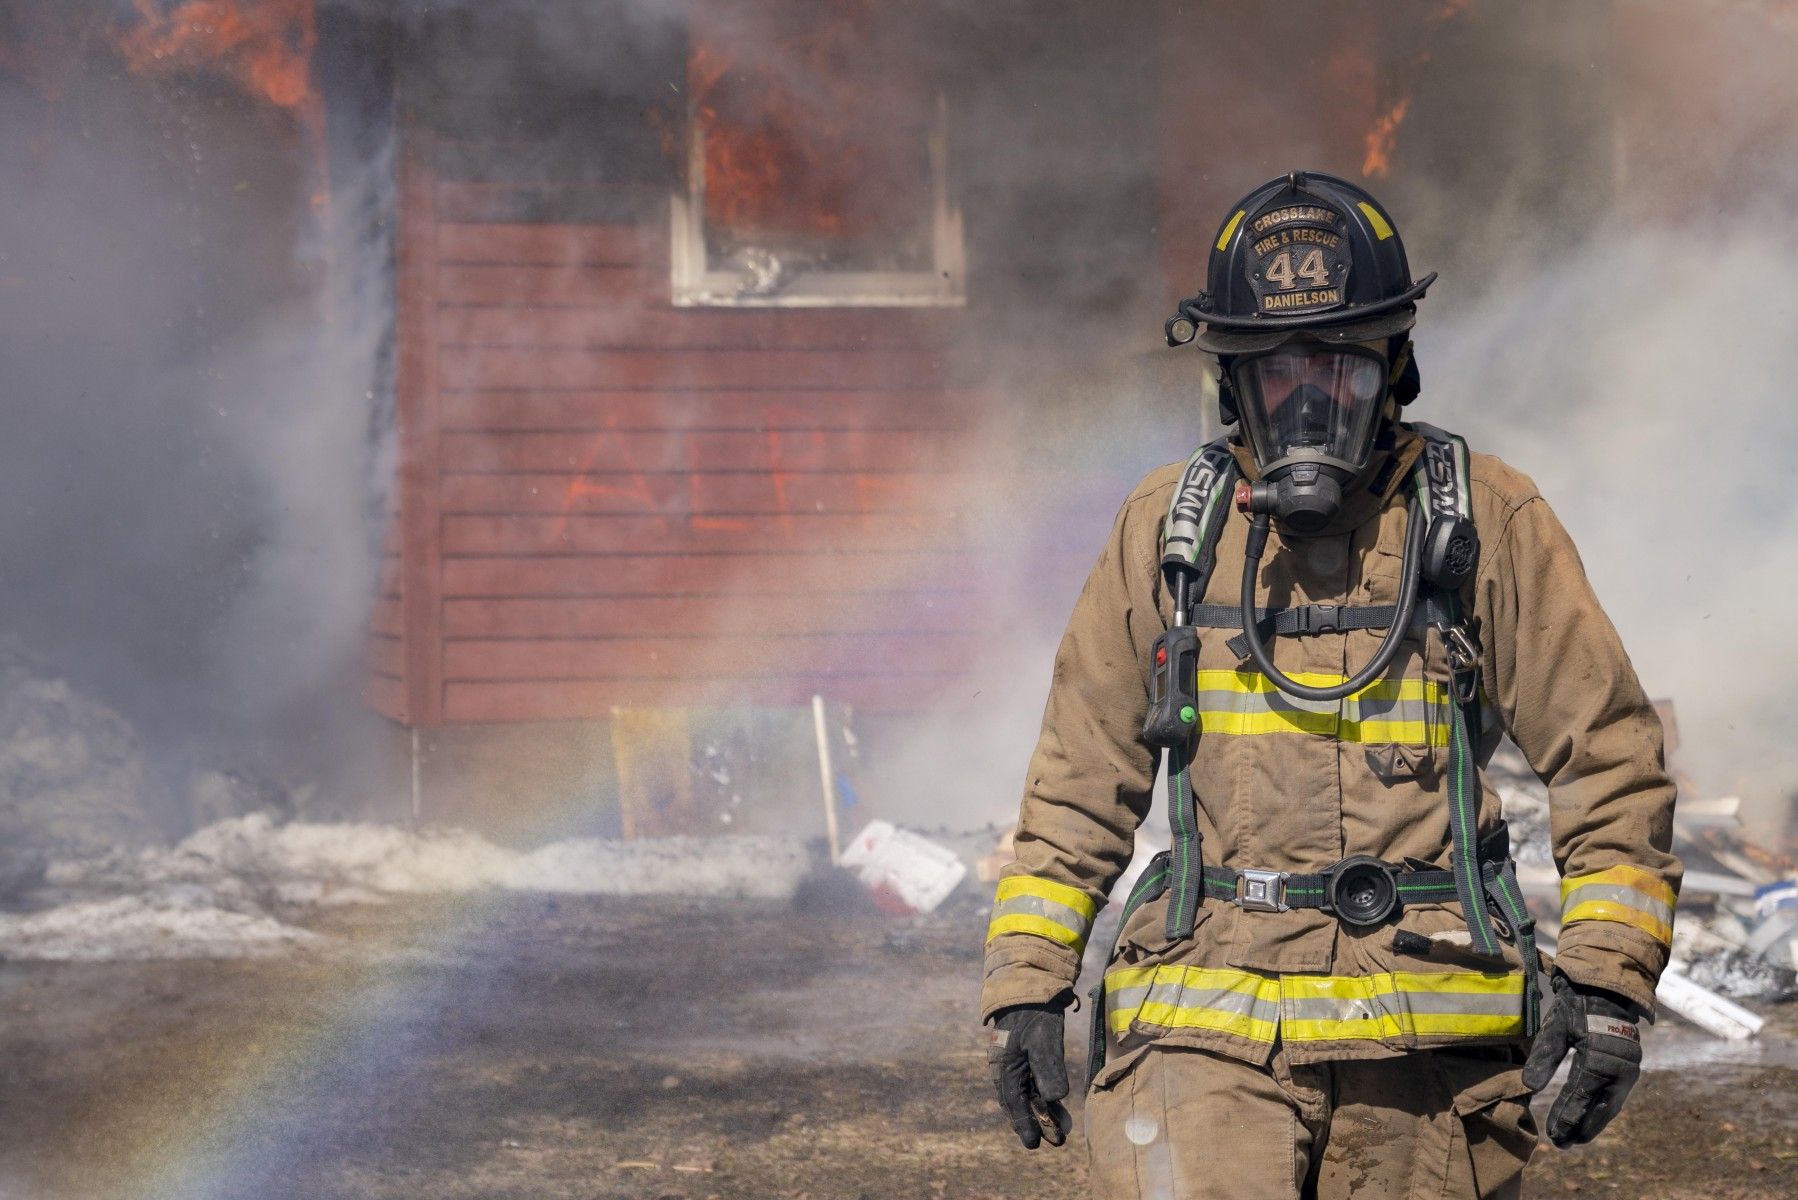 'Calm the Chaos! Mastering Fireground Command,' was a two-day course held at the Brainerd Fire Department in December 2019, designed to help firefighters understand the structure of proper scene command and to work more cohesively.